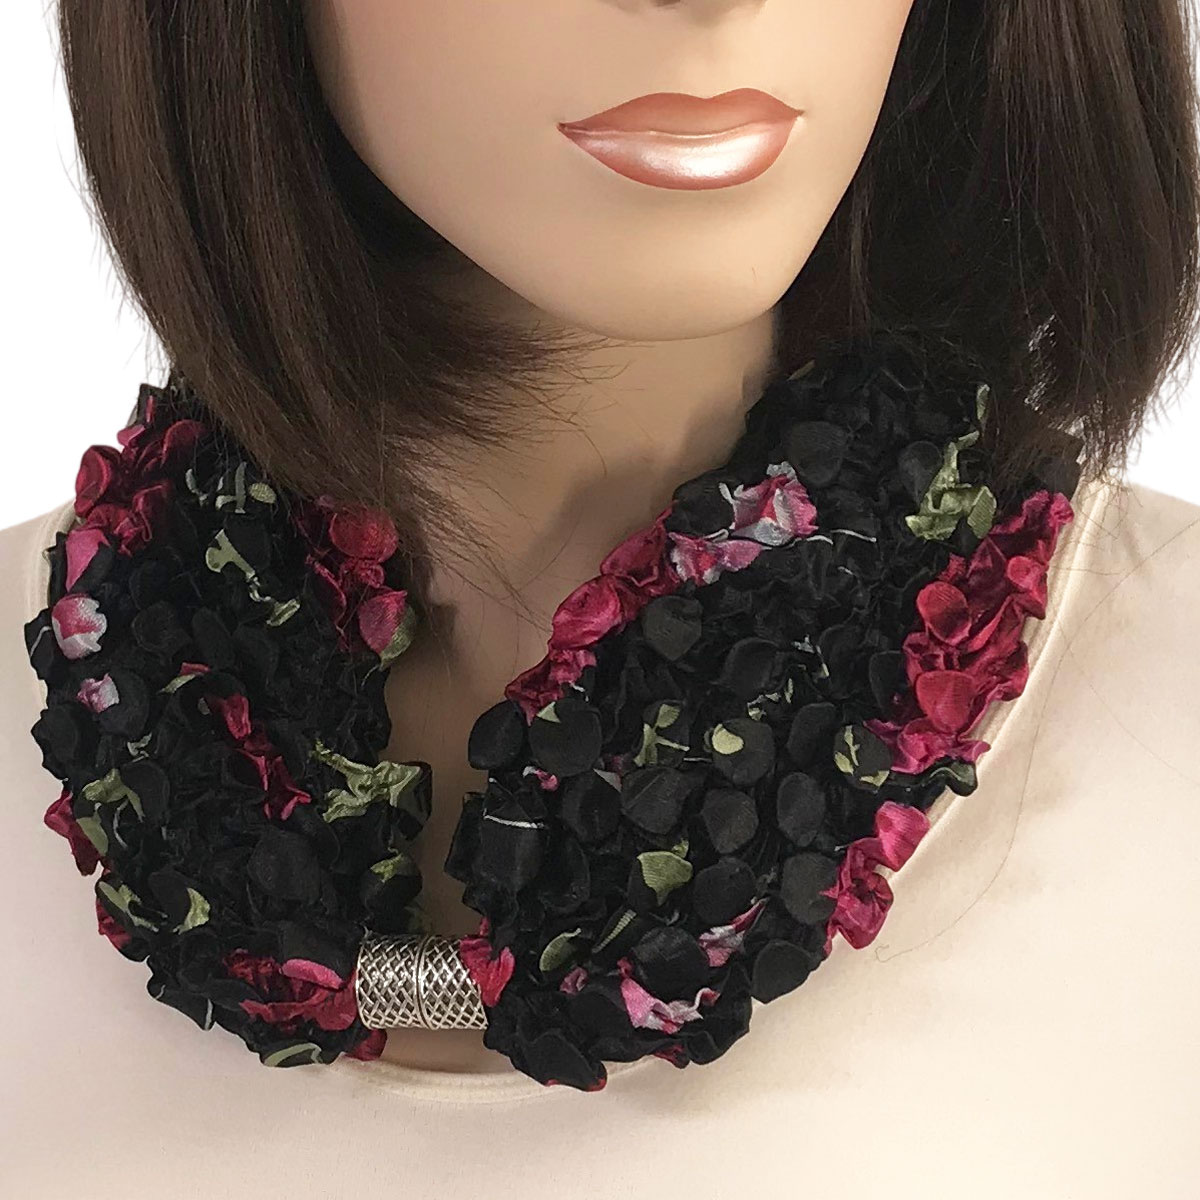 Magnetic Clasp Scarves - Coin + Bubble Satin  - #21 BLACK with ROSES Coin Magnetic Clasp Scarf